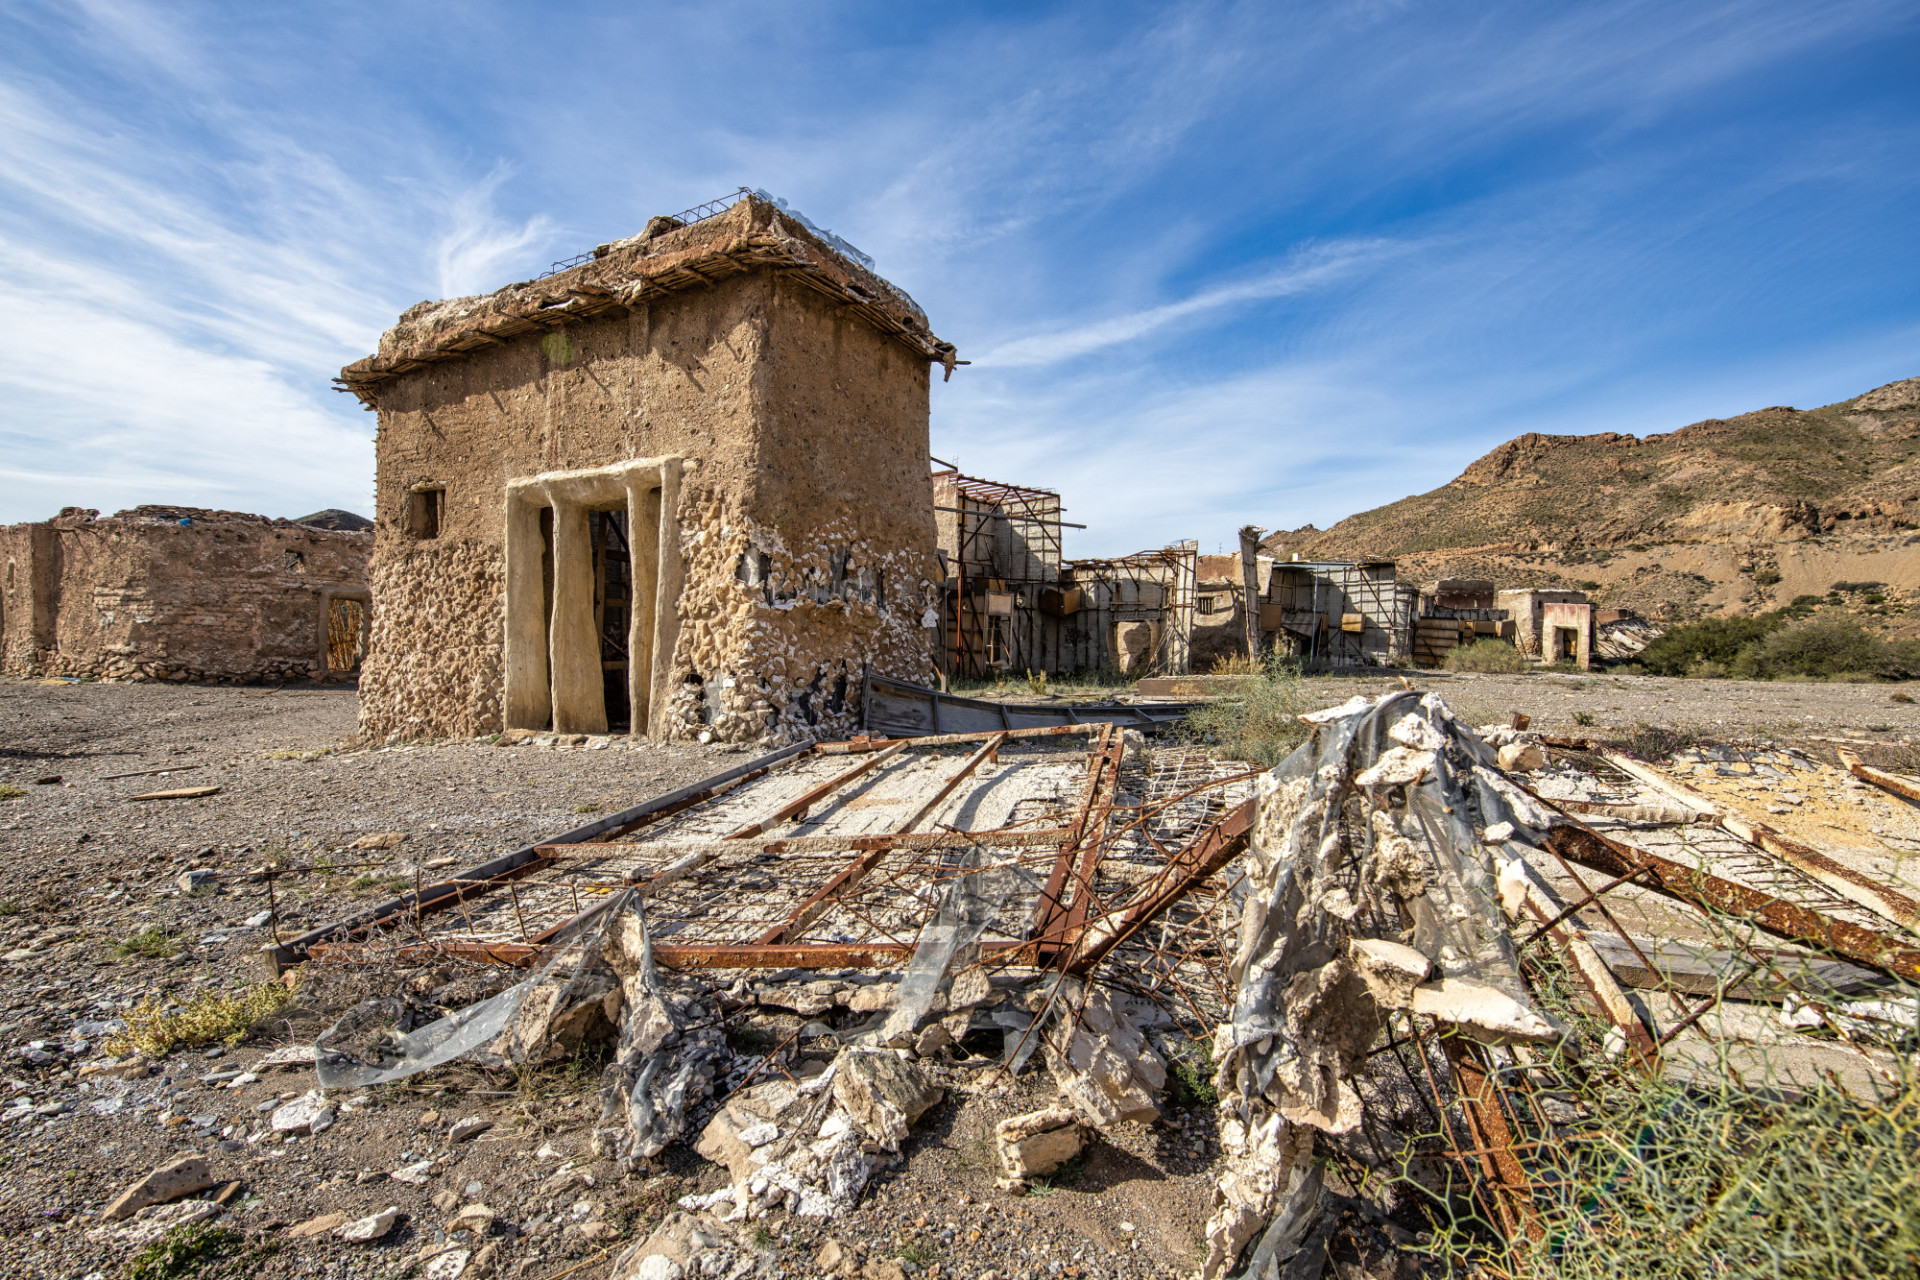 Abandoned village in Andalusia Spain